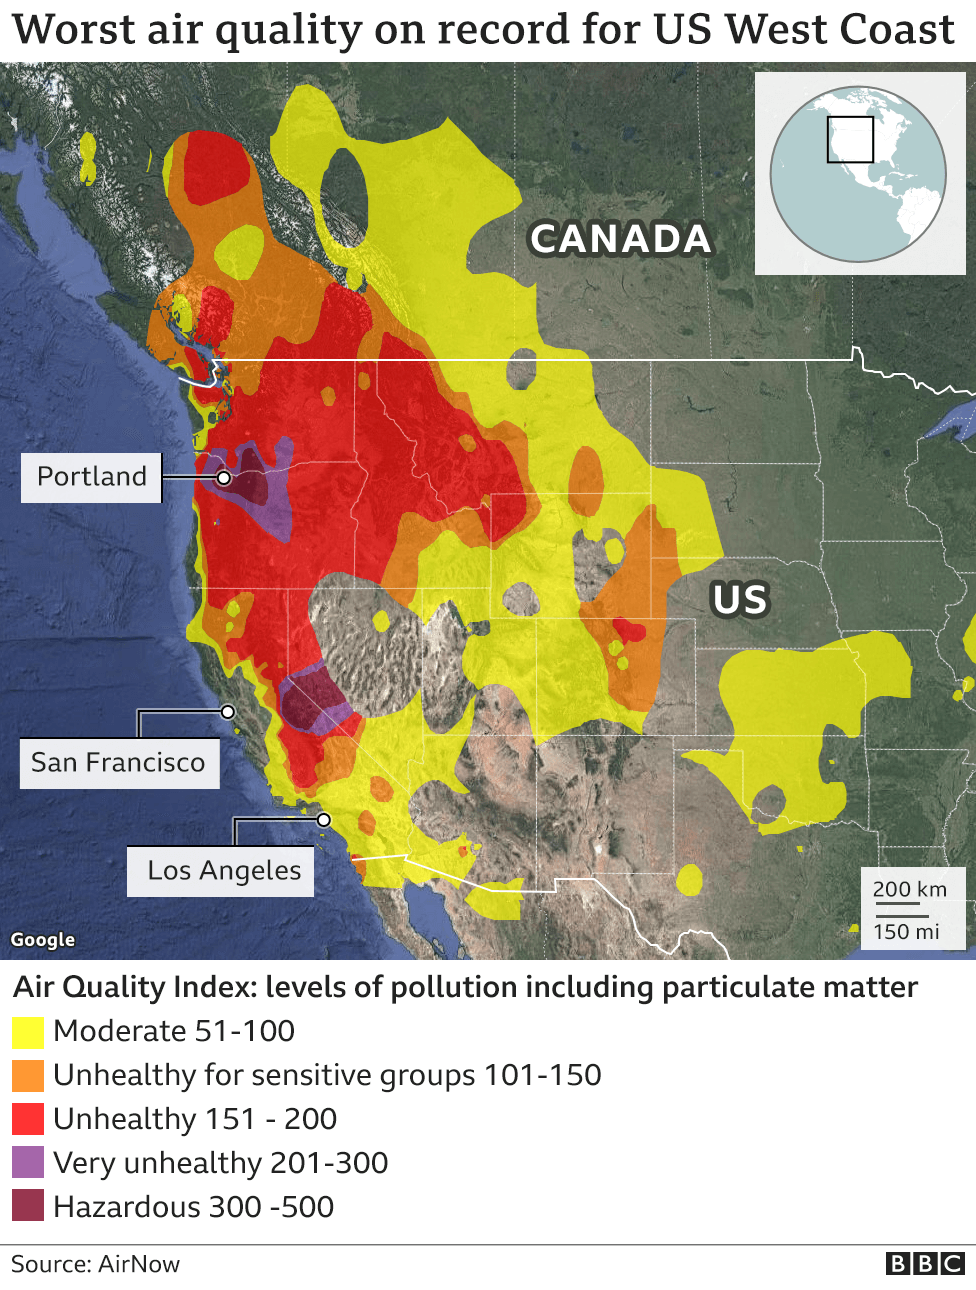 Map showing air quality index for California and Oregon